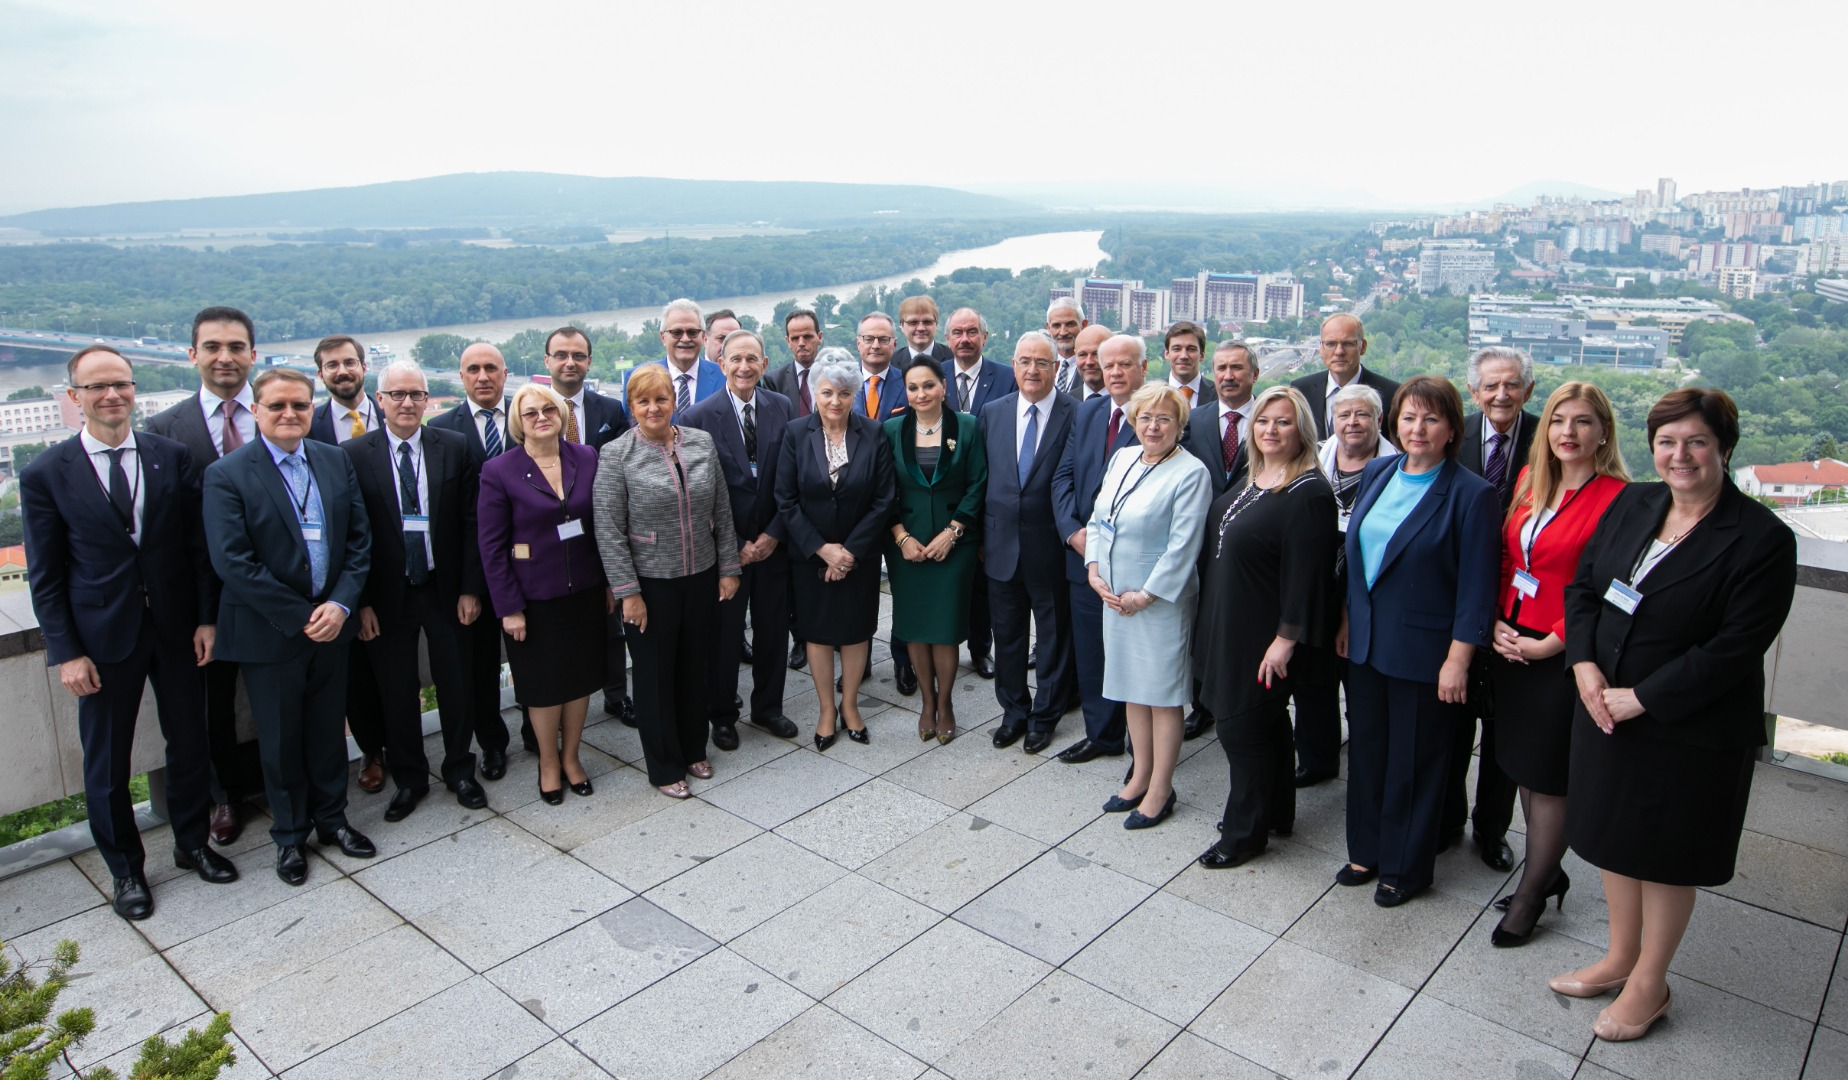 28.05.2019. At the Conference of Chief Justices of Central and Eastern Europe, which is held in Bratislava this year, a number of topics have been raised for discussion: on public perceptions of the value of the courts in the modern media environment, on the role of the Supreme Courts in the formation of unified case-law, on issuing clear, well-reasoned opinions at all levels, as well as on the role of courts in ensuring human rights.  Also, issues related to the selection of judges and effective disciplinary mechanisms will be discussed.